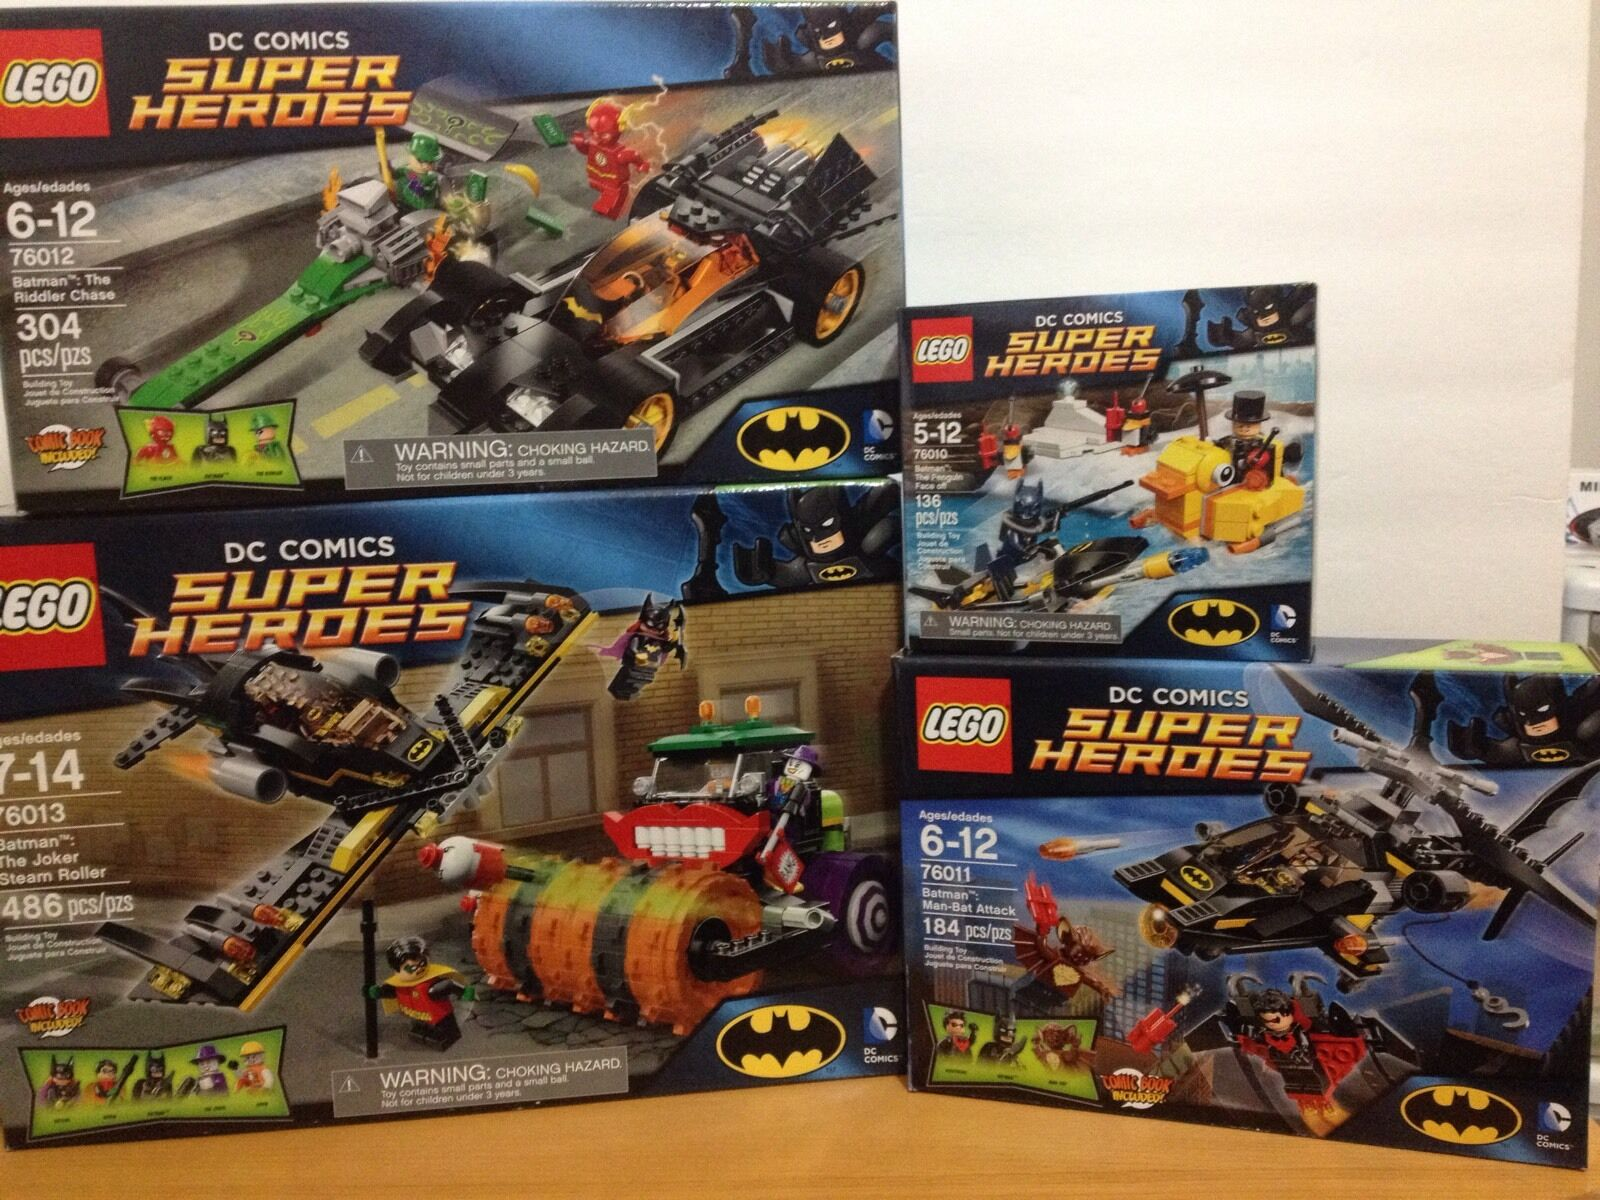 Lego DC Comic Batman 76010, 76011, 76012, 76013 set of 4 RETIROT